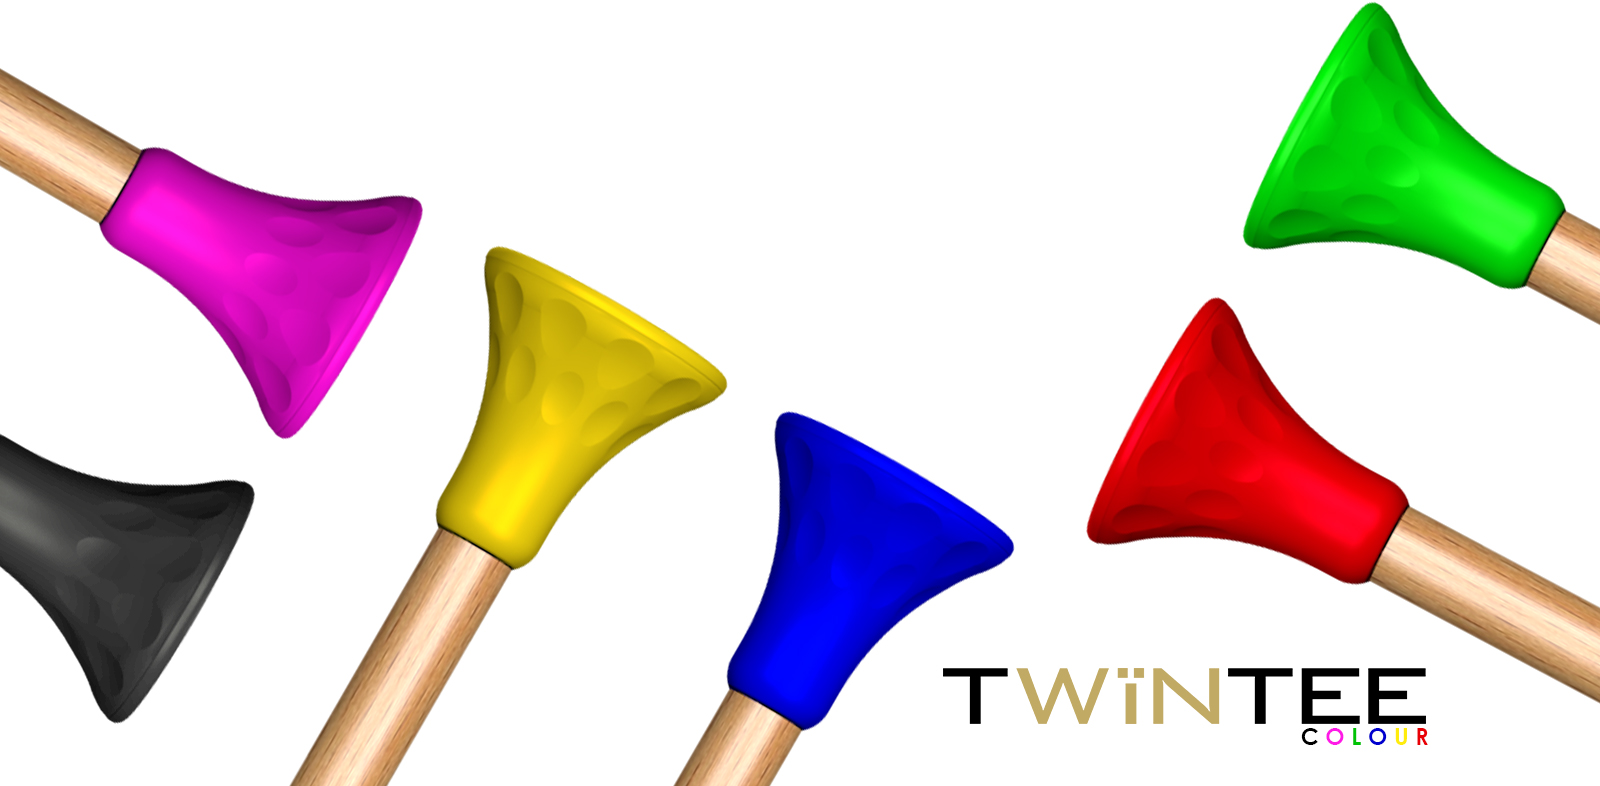 TwinTee Colour Golf Tee